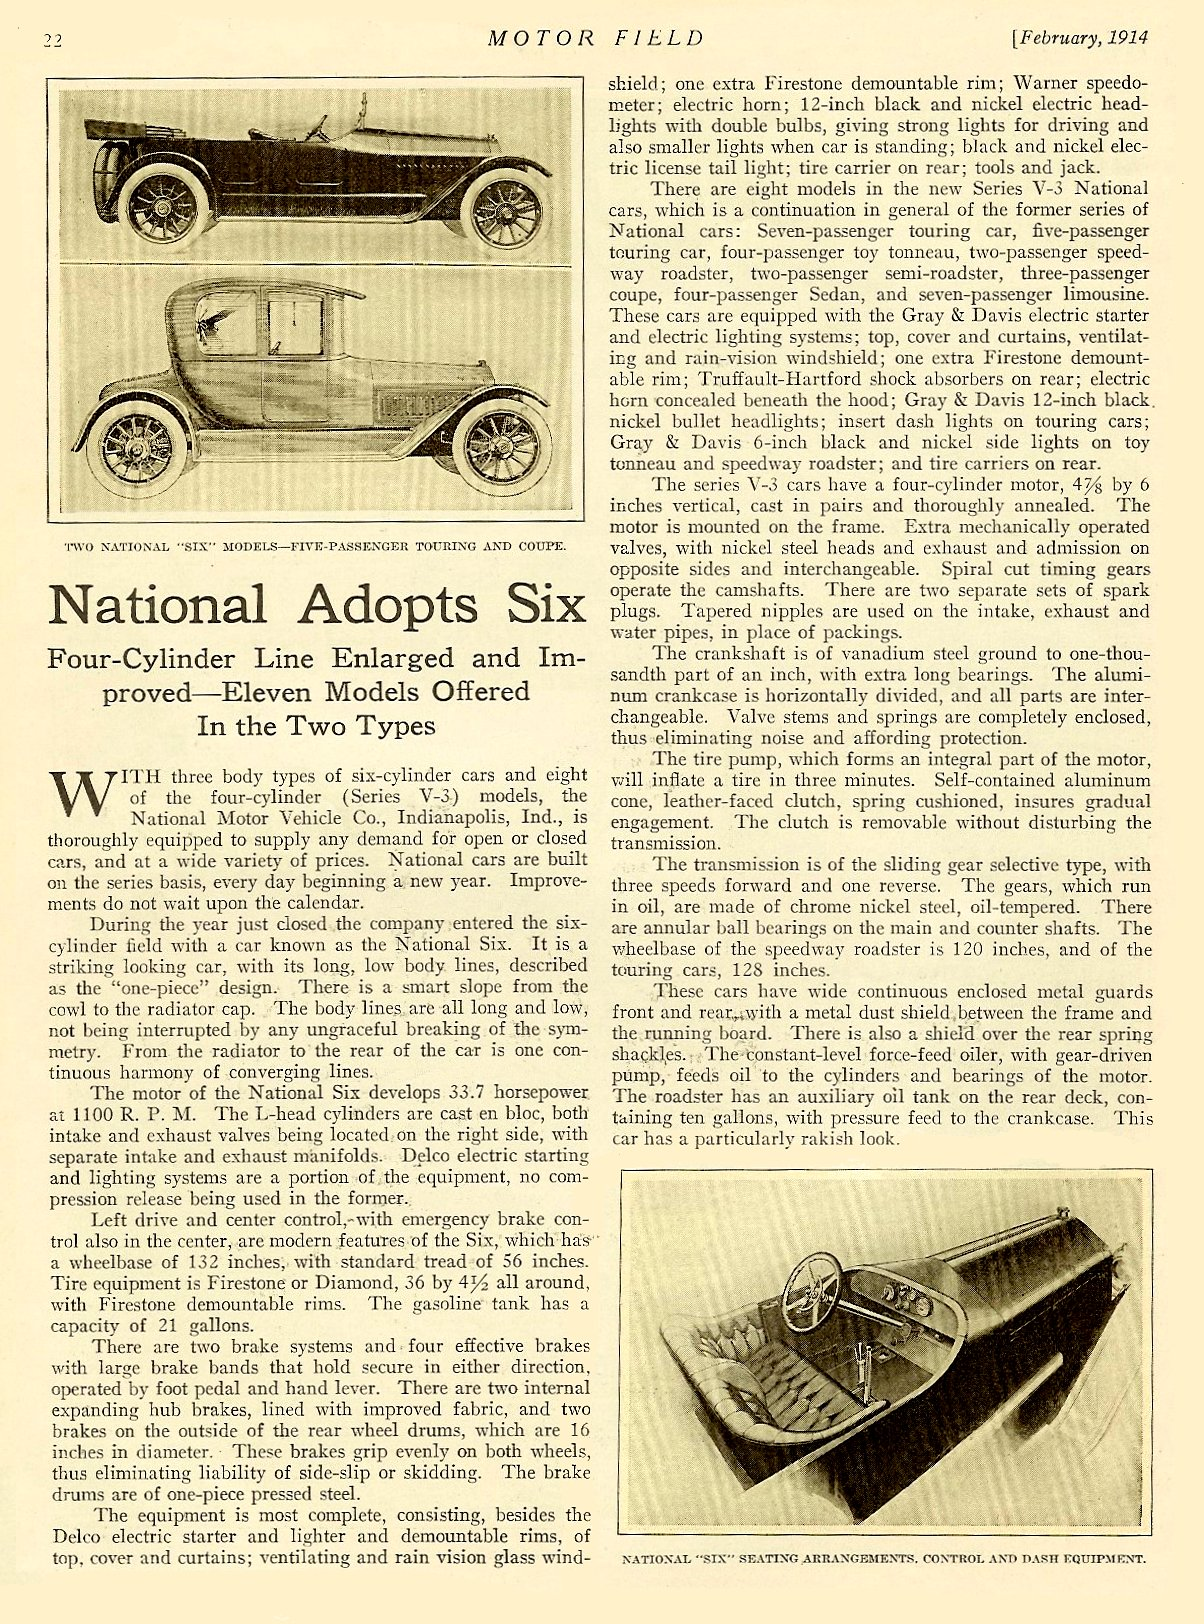 """1914 2 NATIONAL """"National Adopts Six"""" article """"Four-Cylinder Line Enlarged and Improved – Eleven Models Offered In the Two Types"""" MOTOR FIELD Vol. 28 No. 5 February 1914 9″x12″ page 22"""